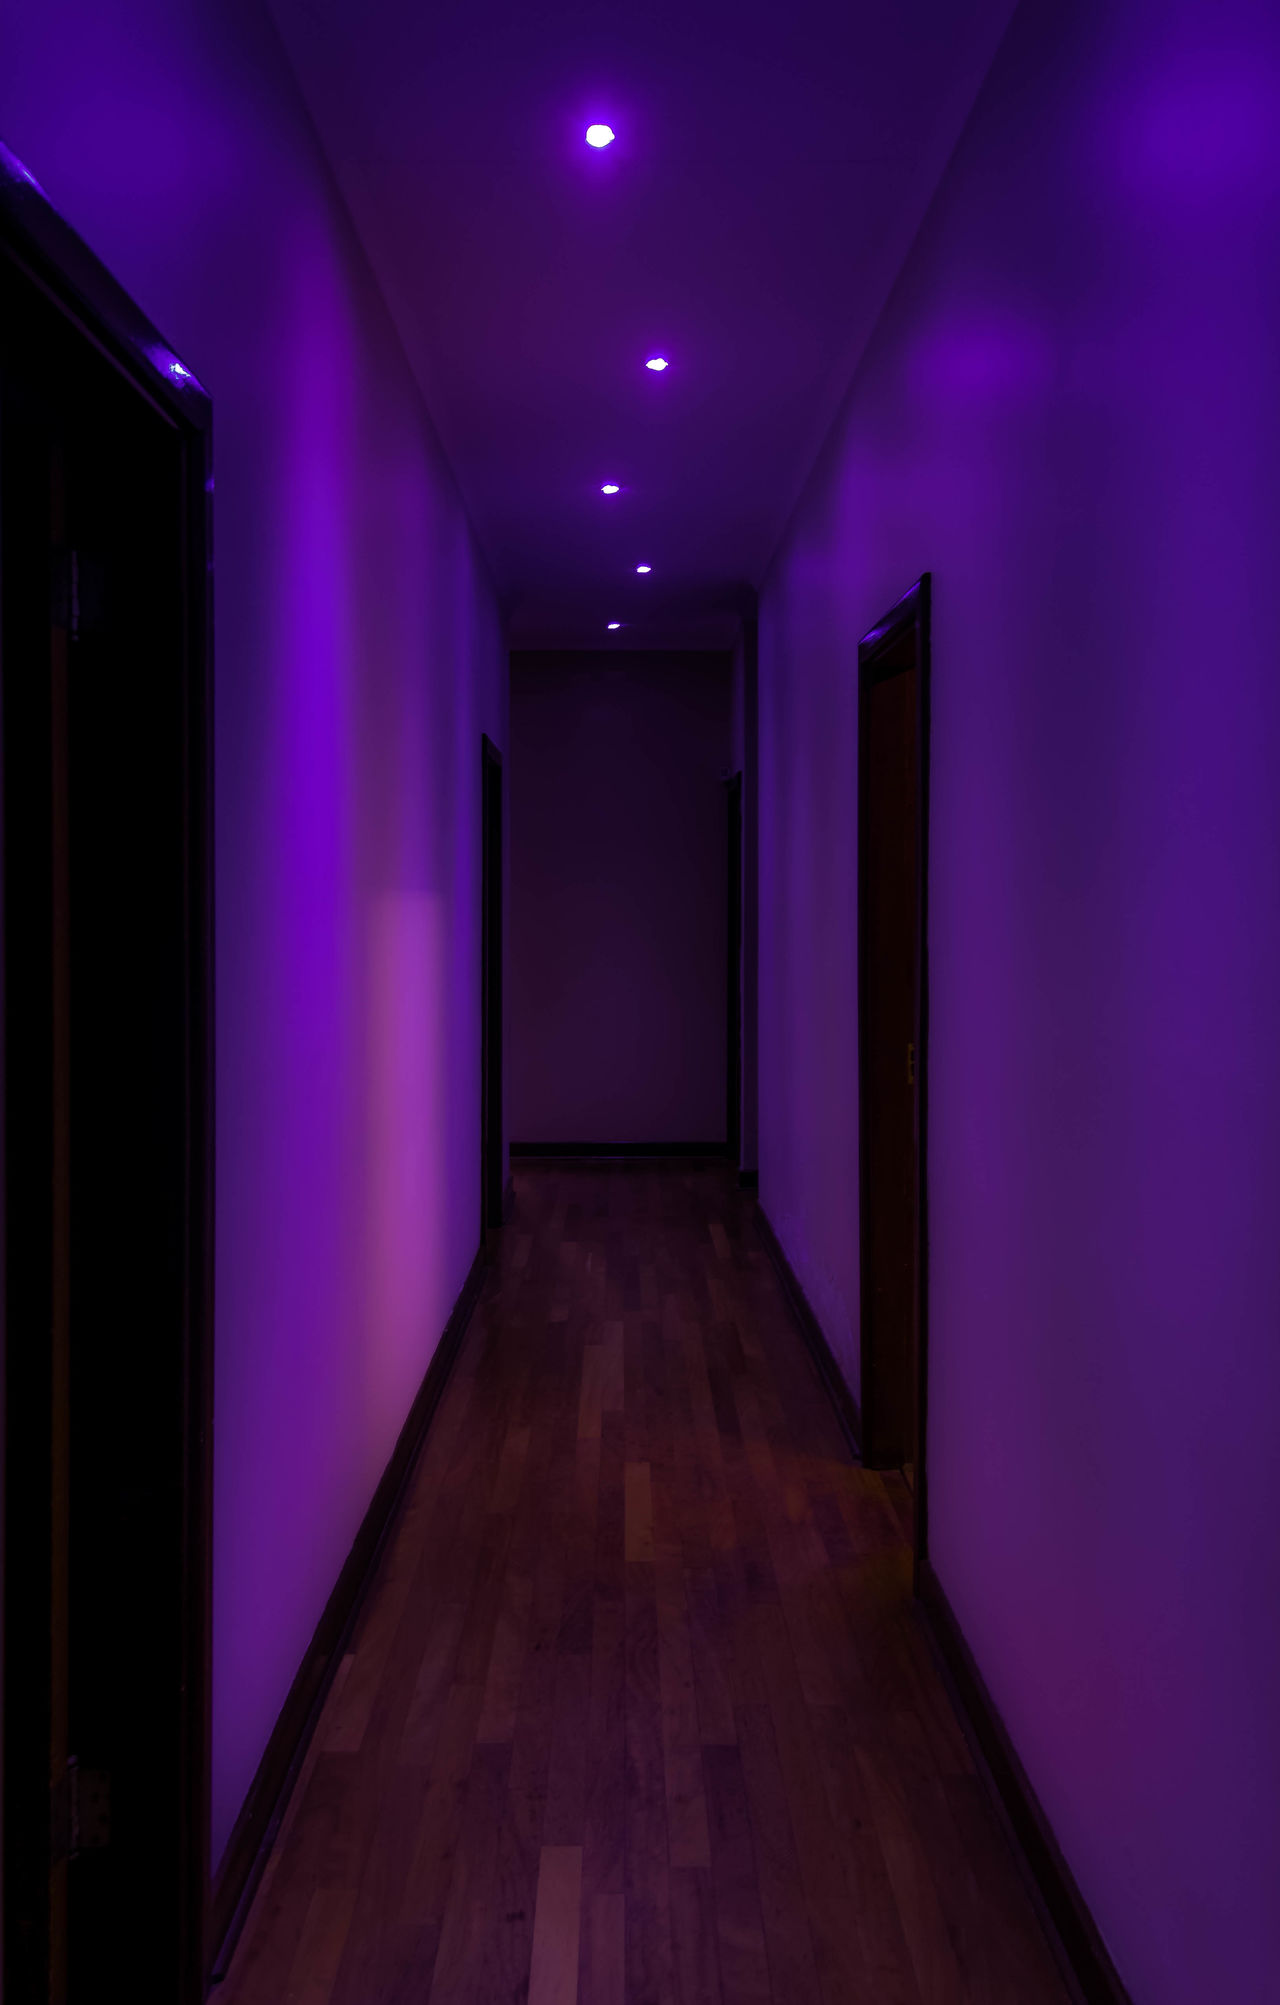 Passage Ambiance Ambient Ambient Light Architecture Built Structure Corridor Corridor View Door Empty Empty Building Empty Corridor Empty Passage Hotel Illuminated Indoors  Lights Lights And Shadows Lights In The Dark Luxury No People Passage Passageway Pink Purple Welcome To Black EyeEm Diversity